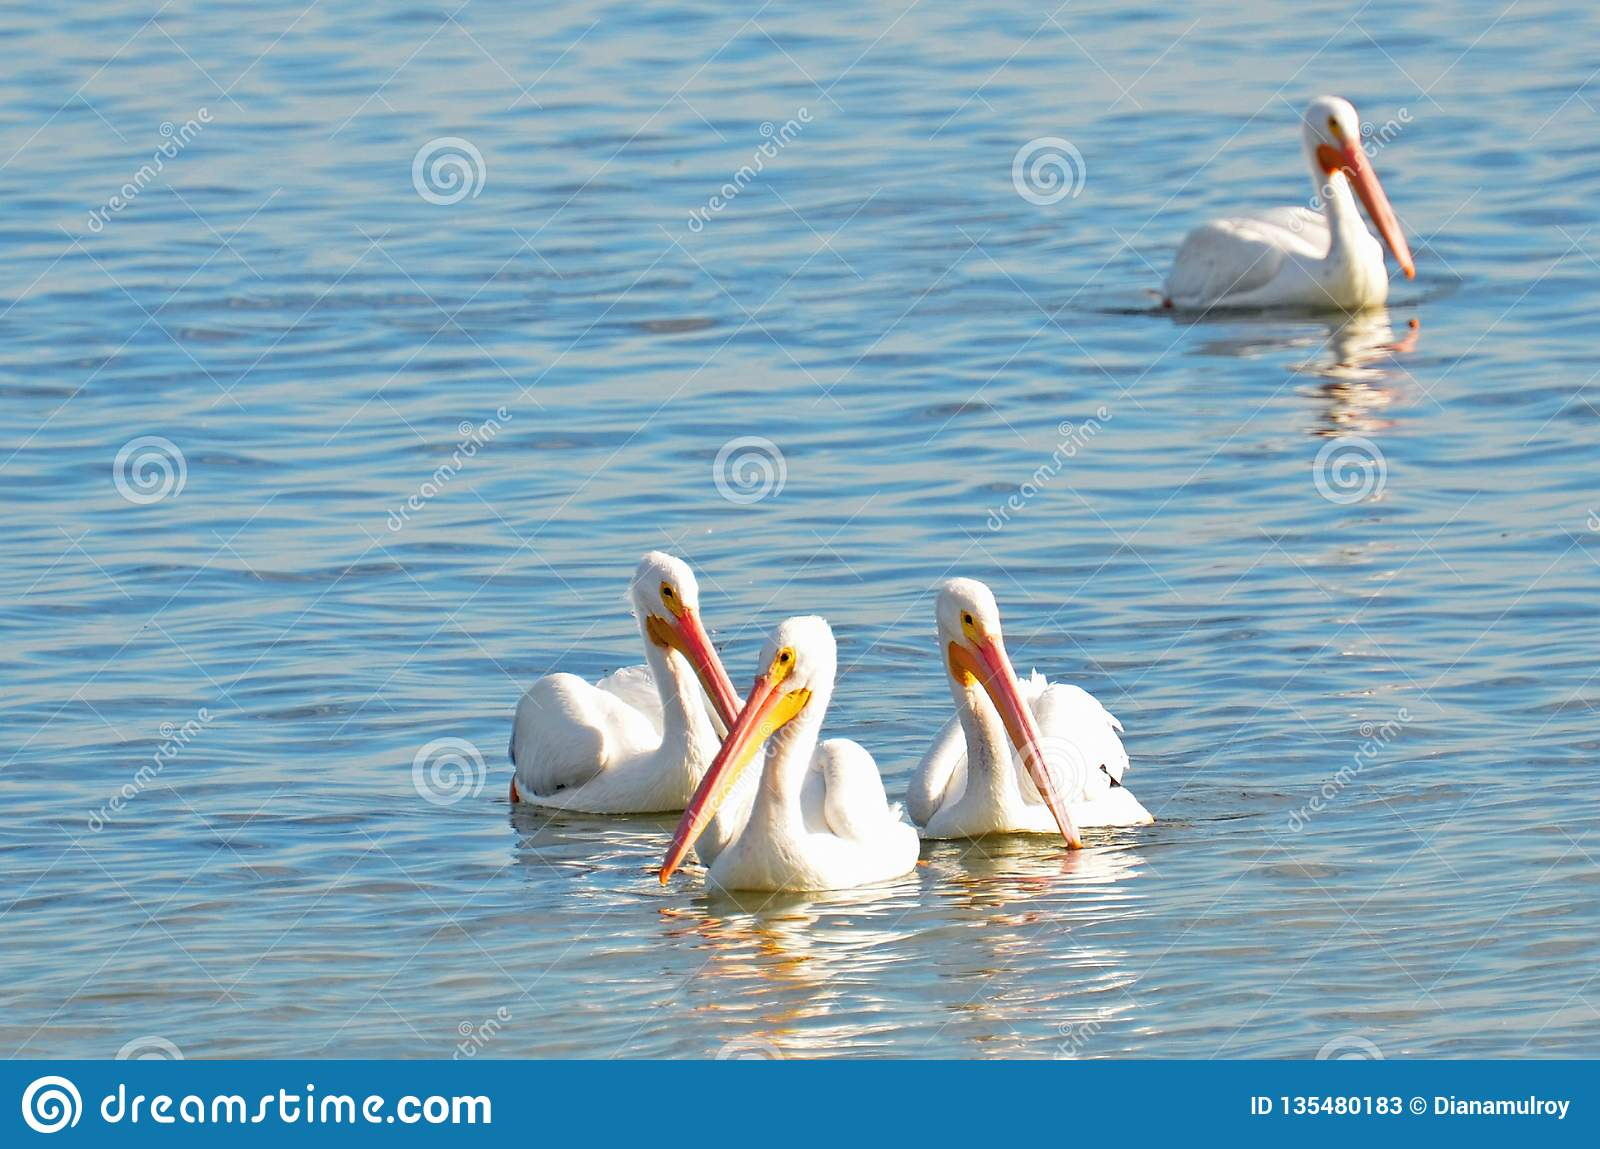 Four American white pelicans floating together in a group on reflective aquamarine water with copy space.